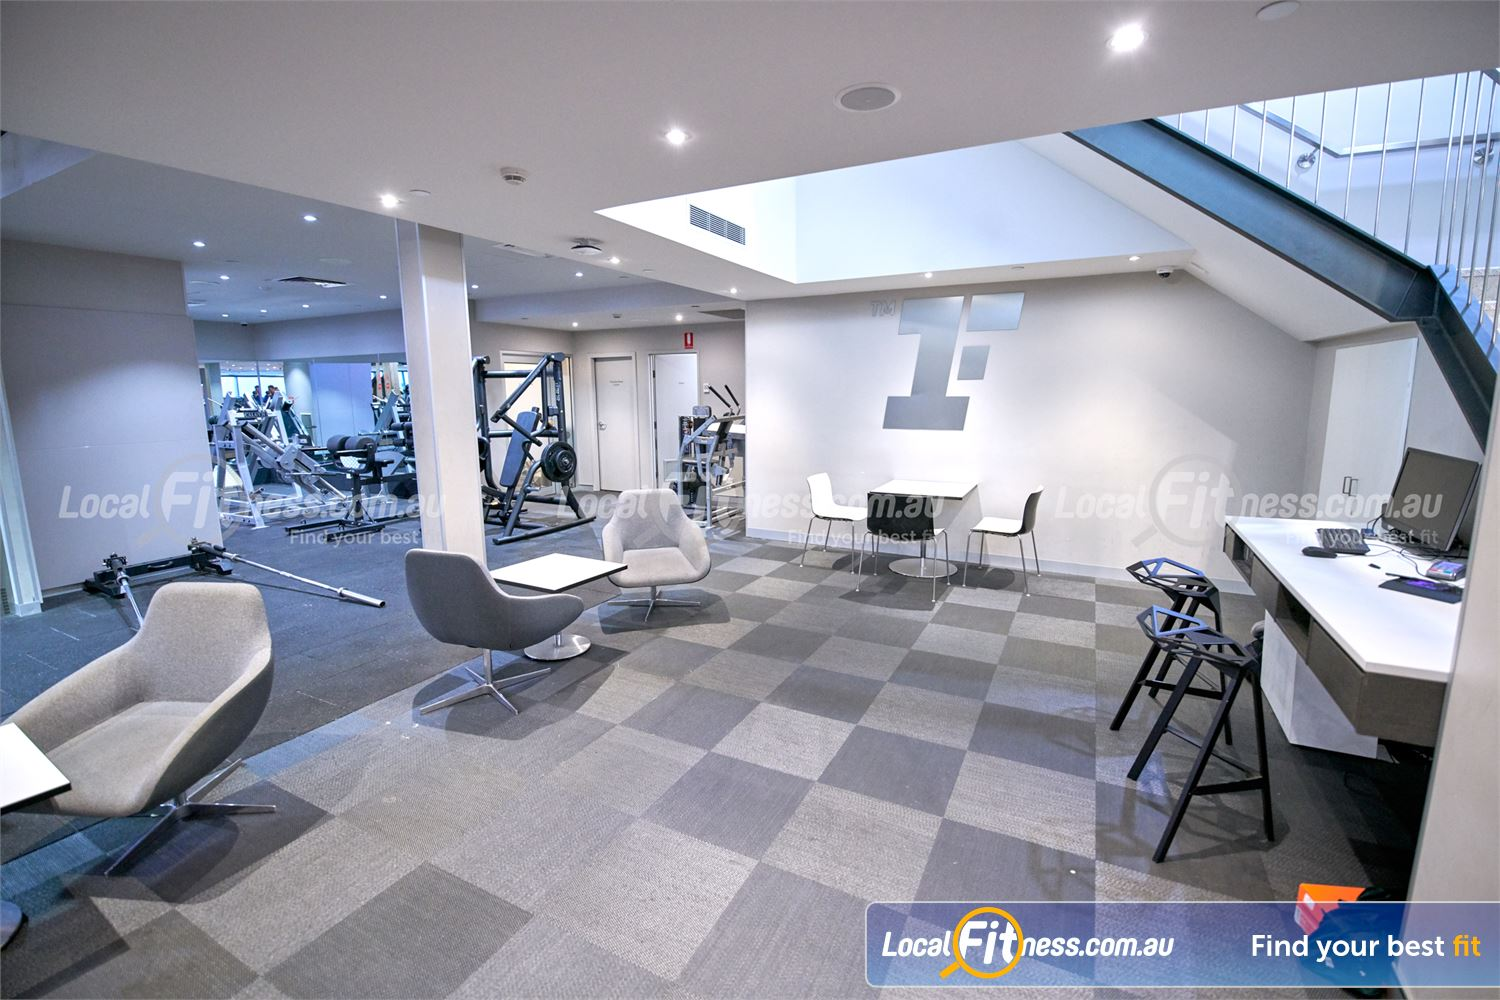 Fitness First Victoria Gardens Richmond The comfortable members lounge area at Fitness First Victoria Gardens.